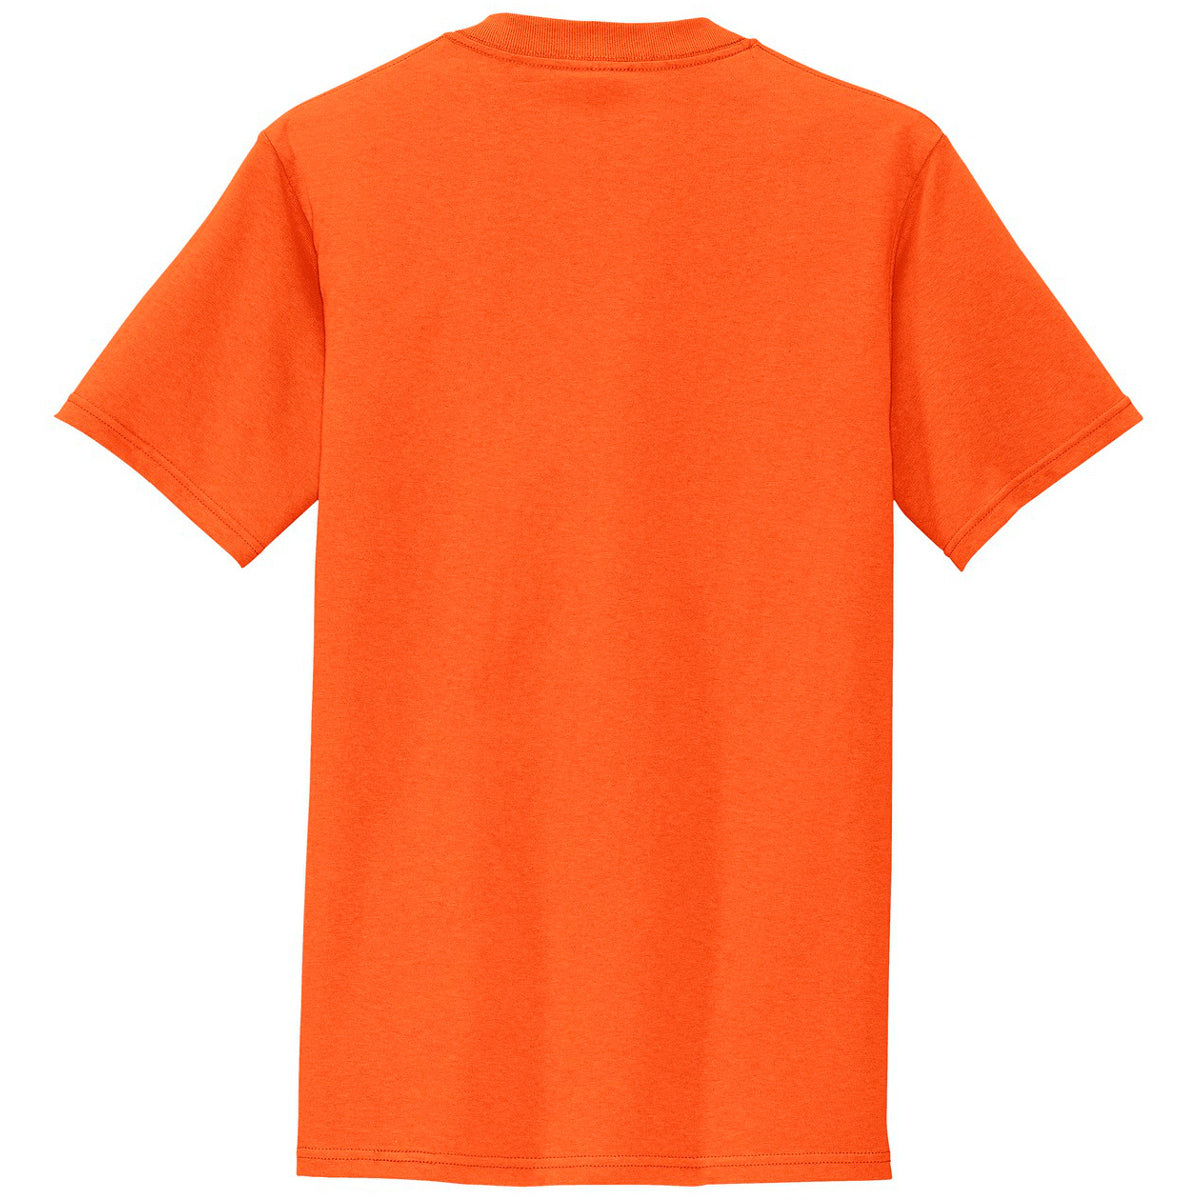 Mafoose Men's All American Tee Shirt with Pocket Safety Orange-Back